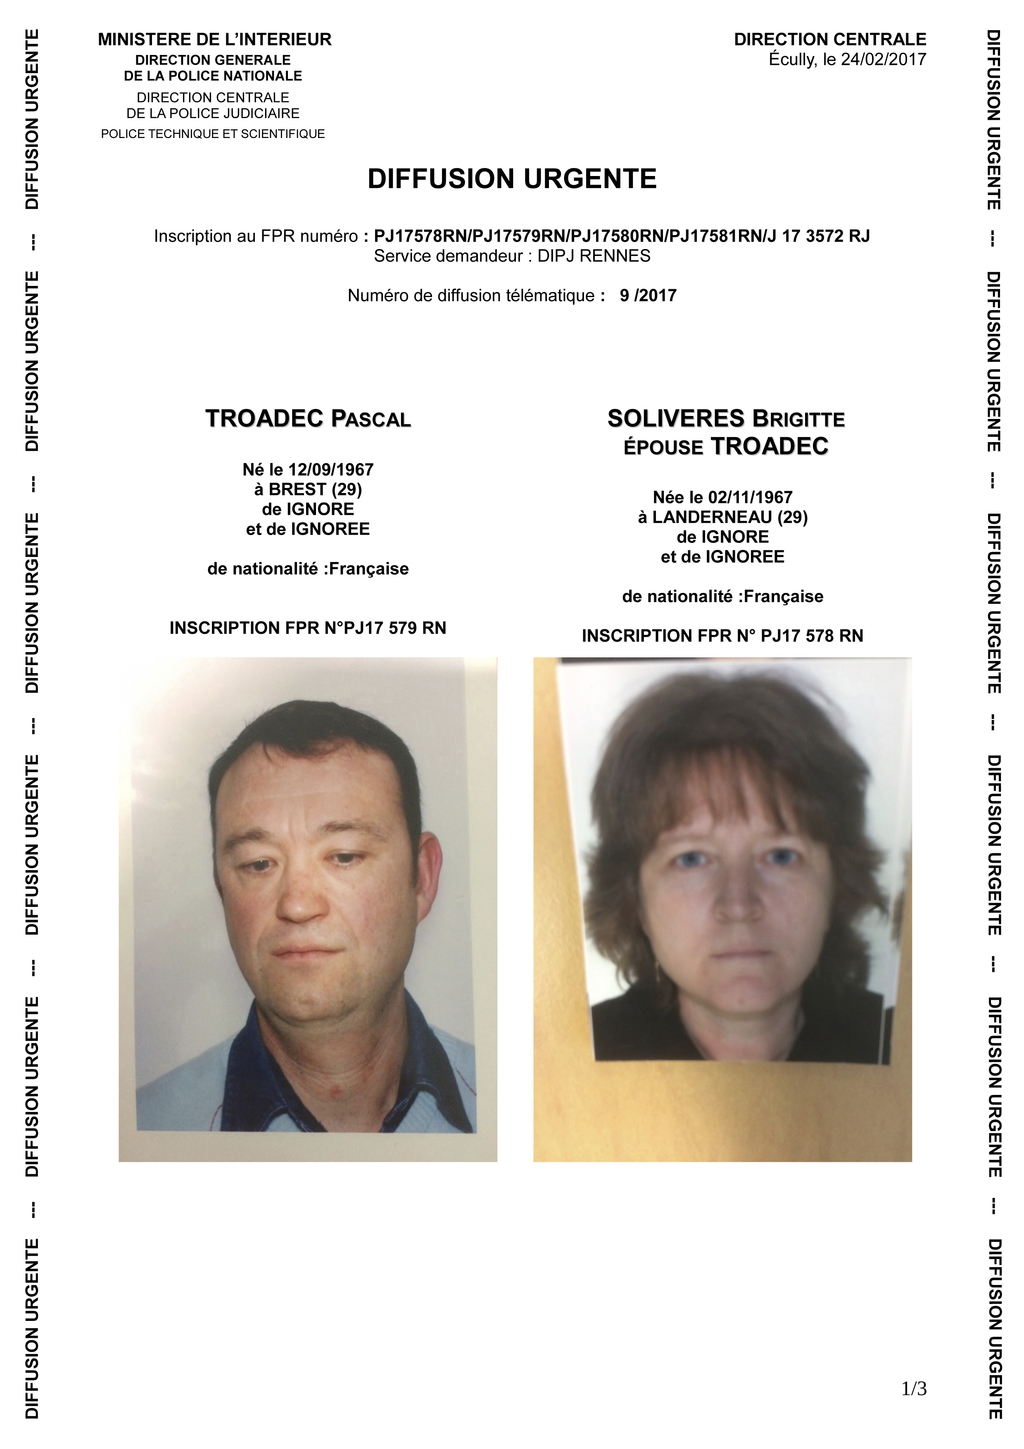 FILE - This handout photo provided by the French Police Nationale and sent to French police authorities on Feb. 24, 2017, shows the por...